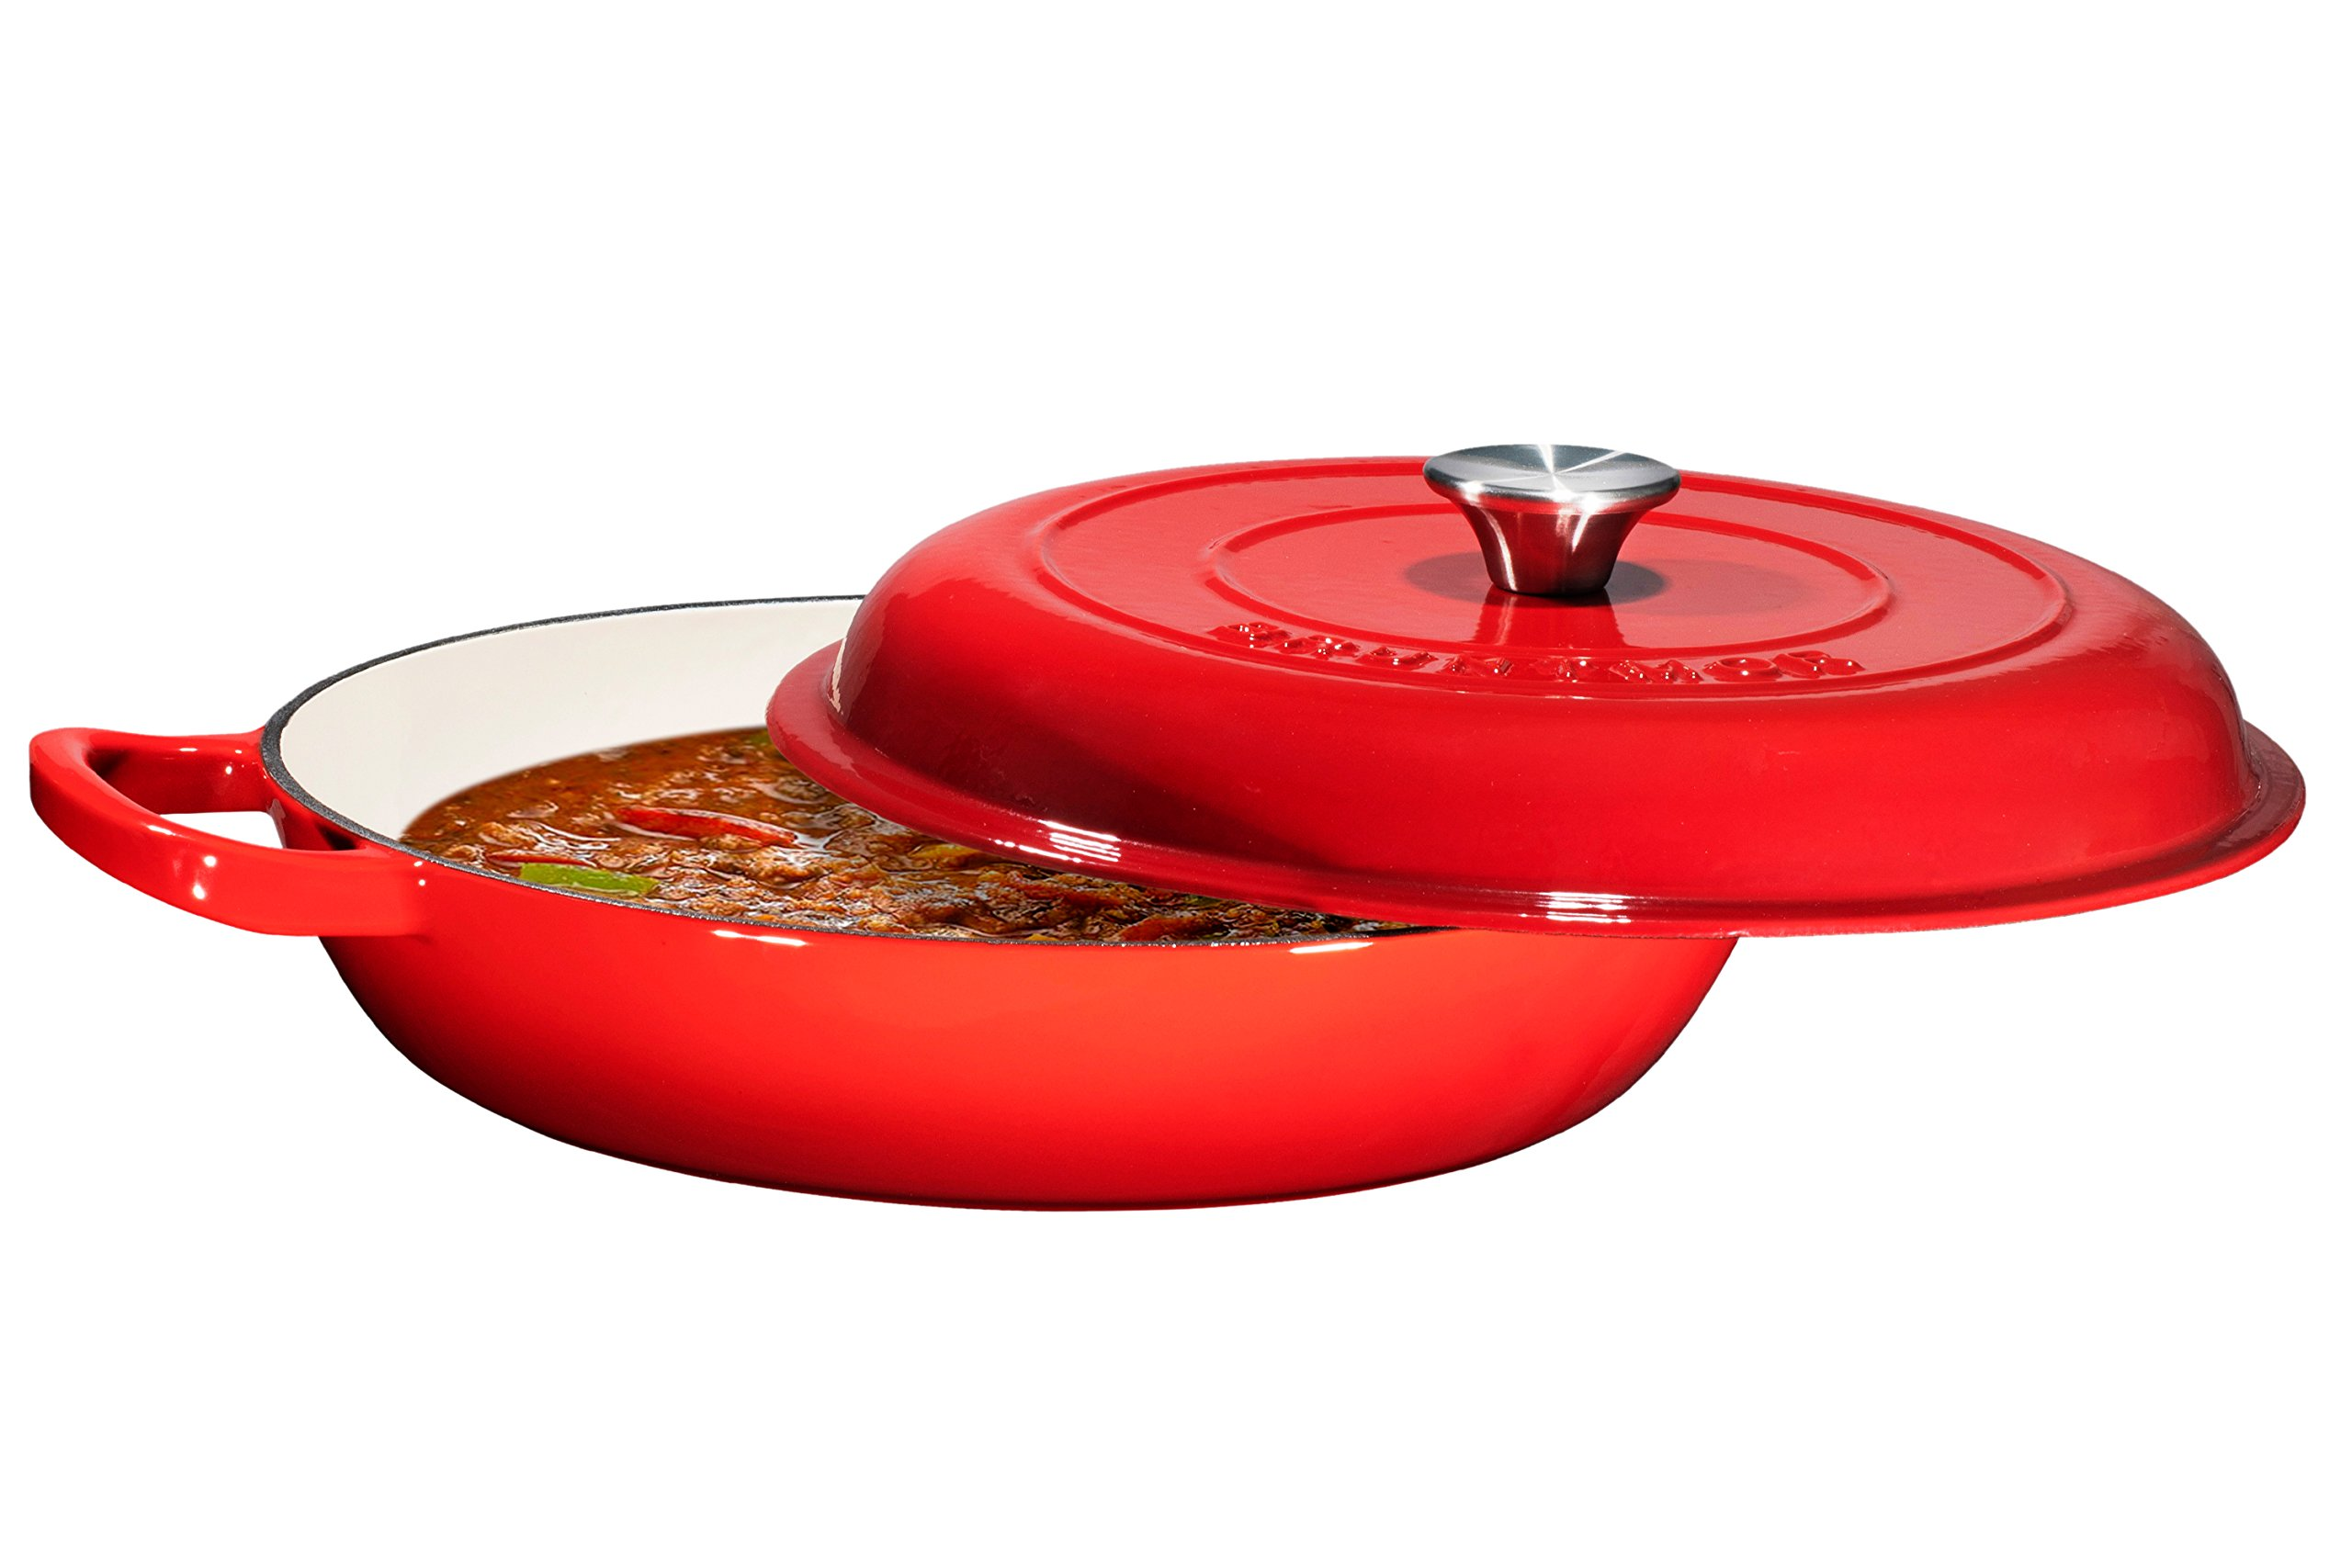 Enameled Cast Iron Casserole Braiser - Pan with Cover, 3.8-Quart, Gradient Red by Bruntmor (Image #10)